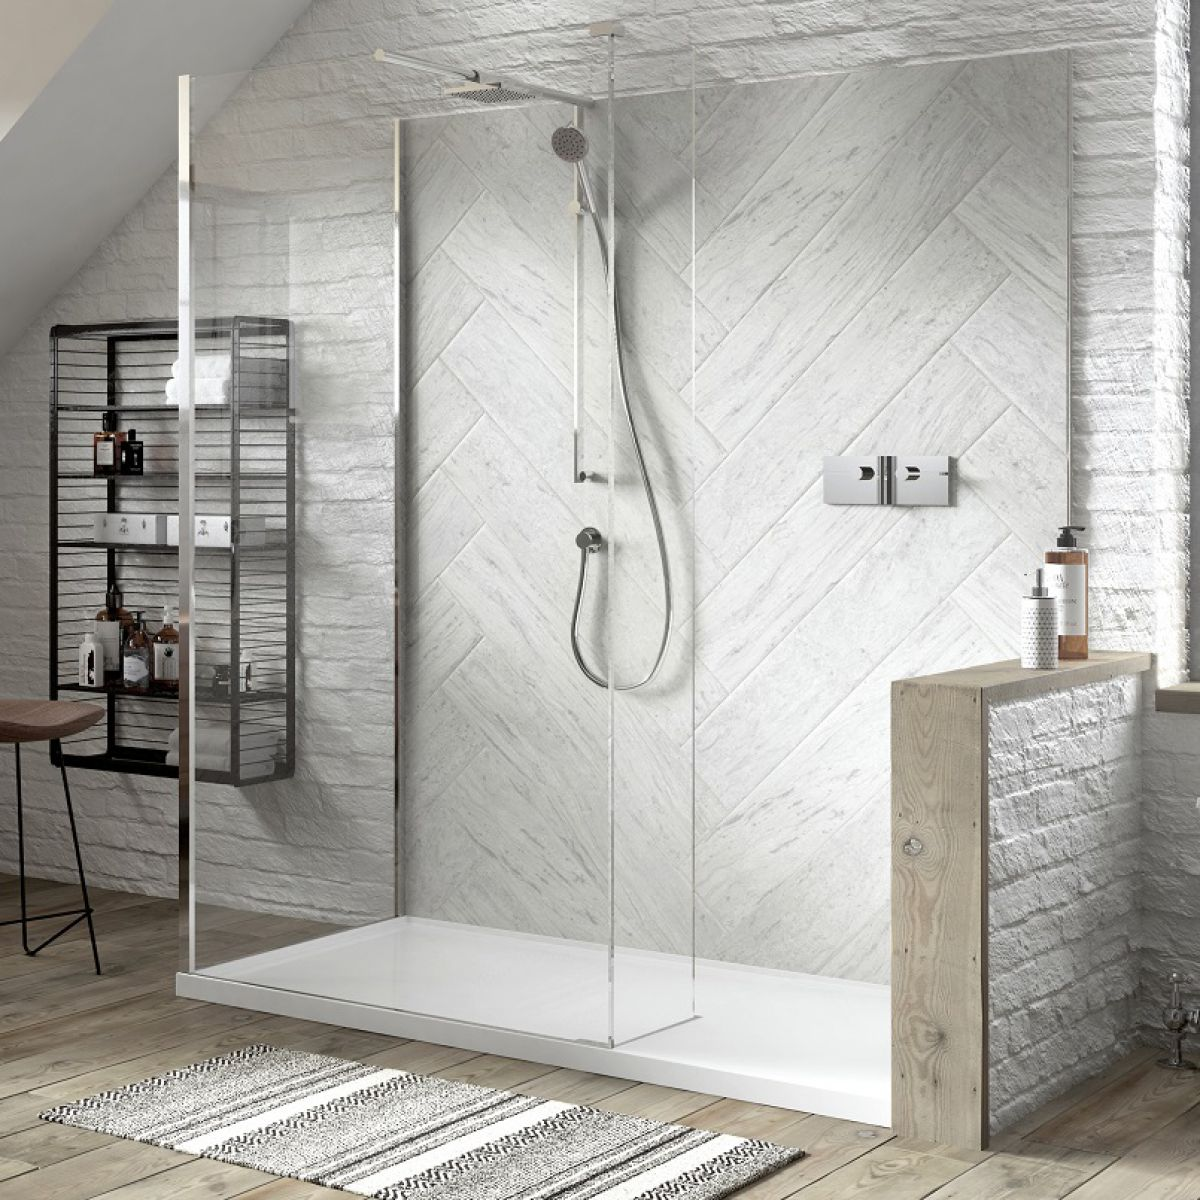 Featured In The Image Above Matki Boutique Walk Shower Enclosure